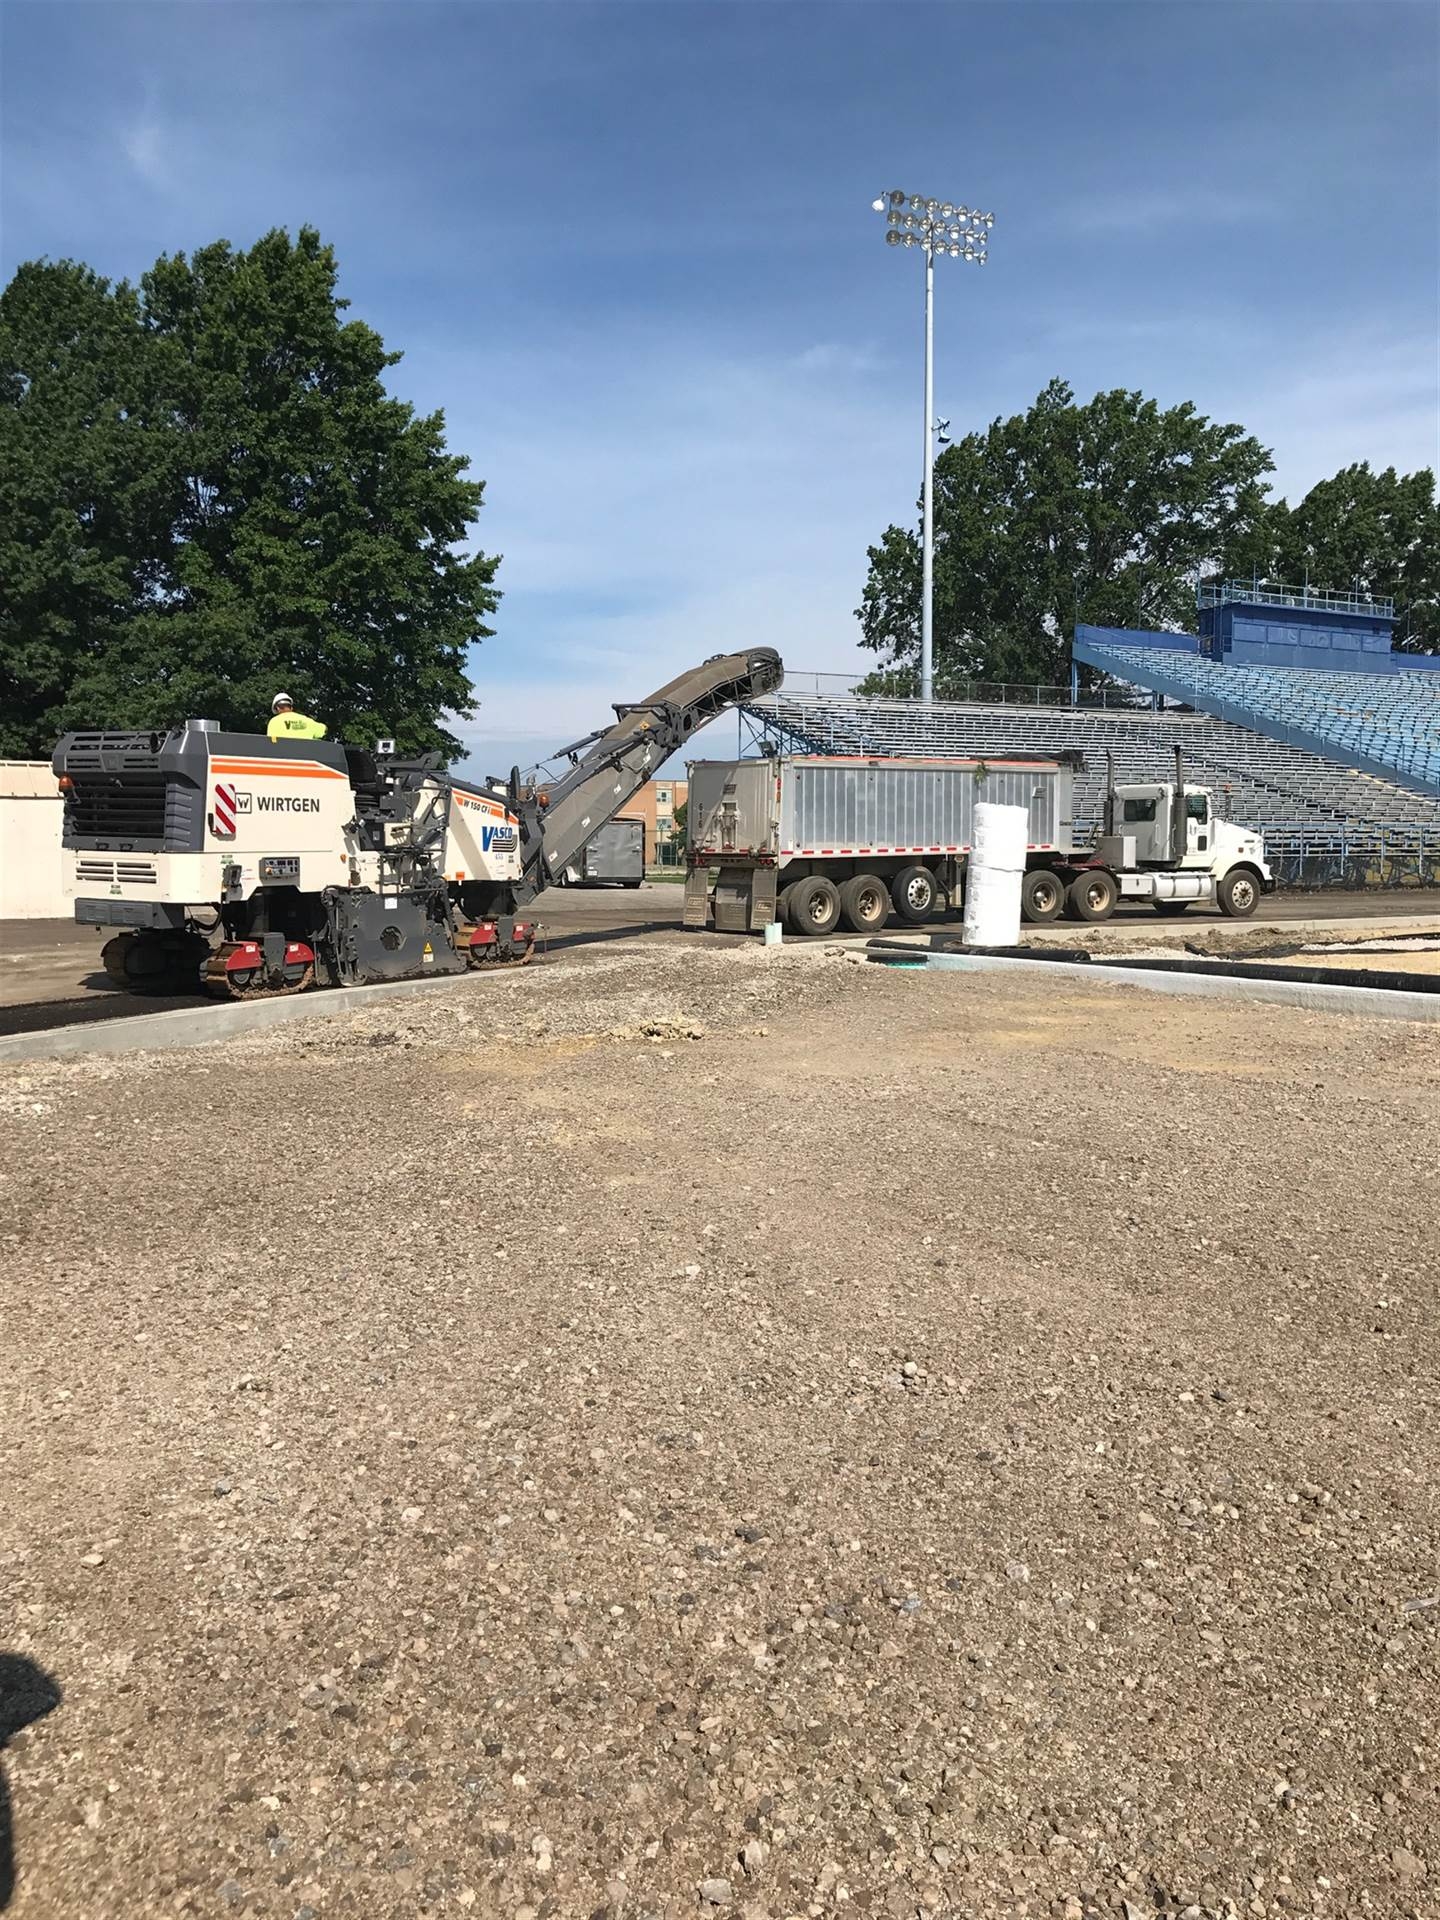 DiBiasio track renovation progress (July 20, 2017)